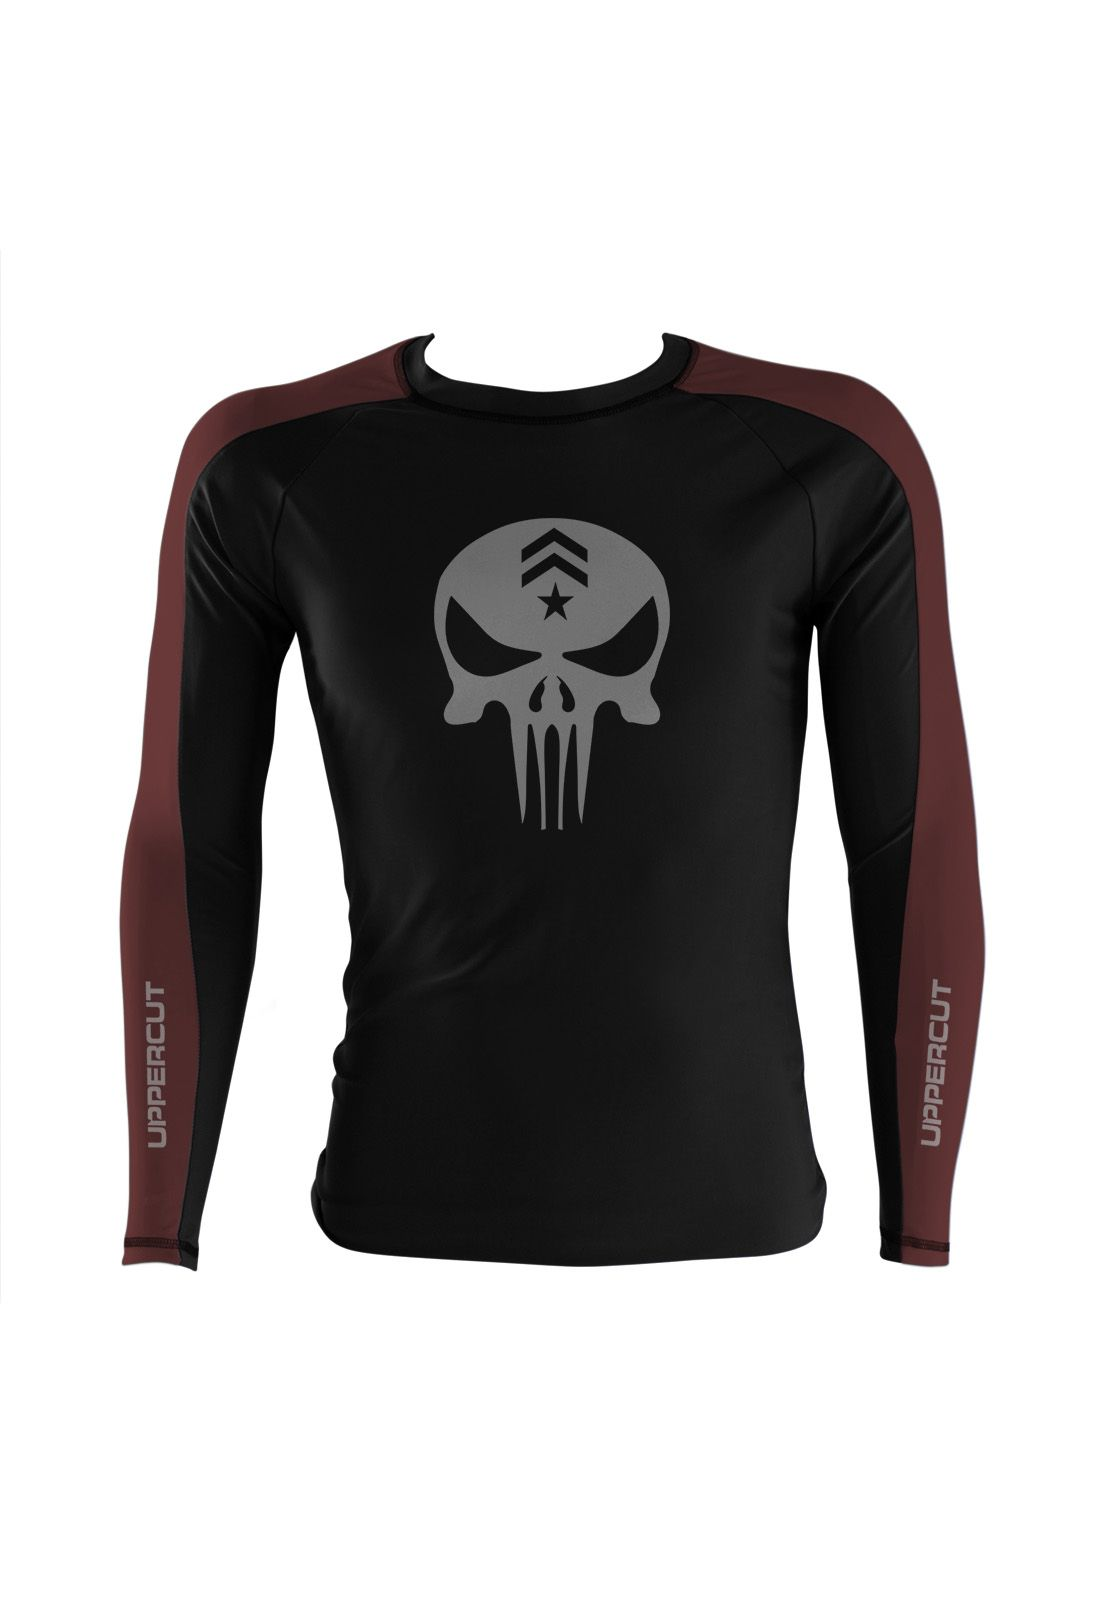 Camisa Rash Guard Justiceiro War R-4 - Preto/Marron - Uppercut